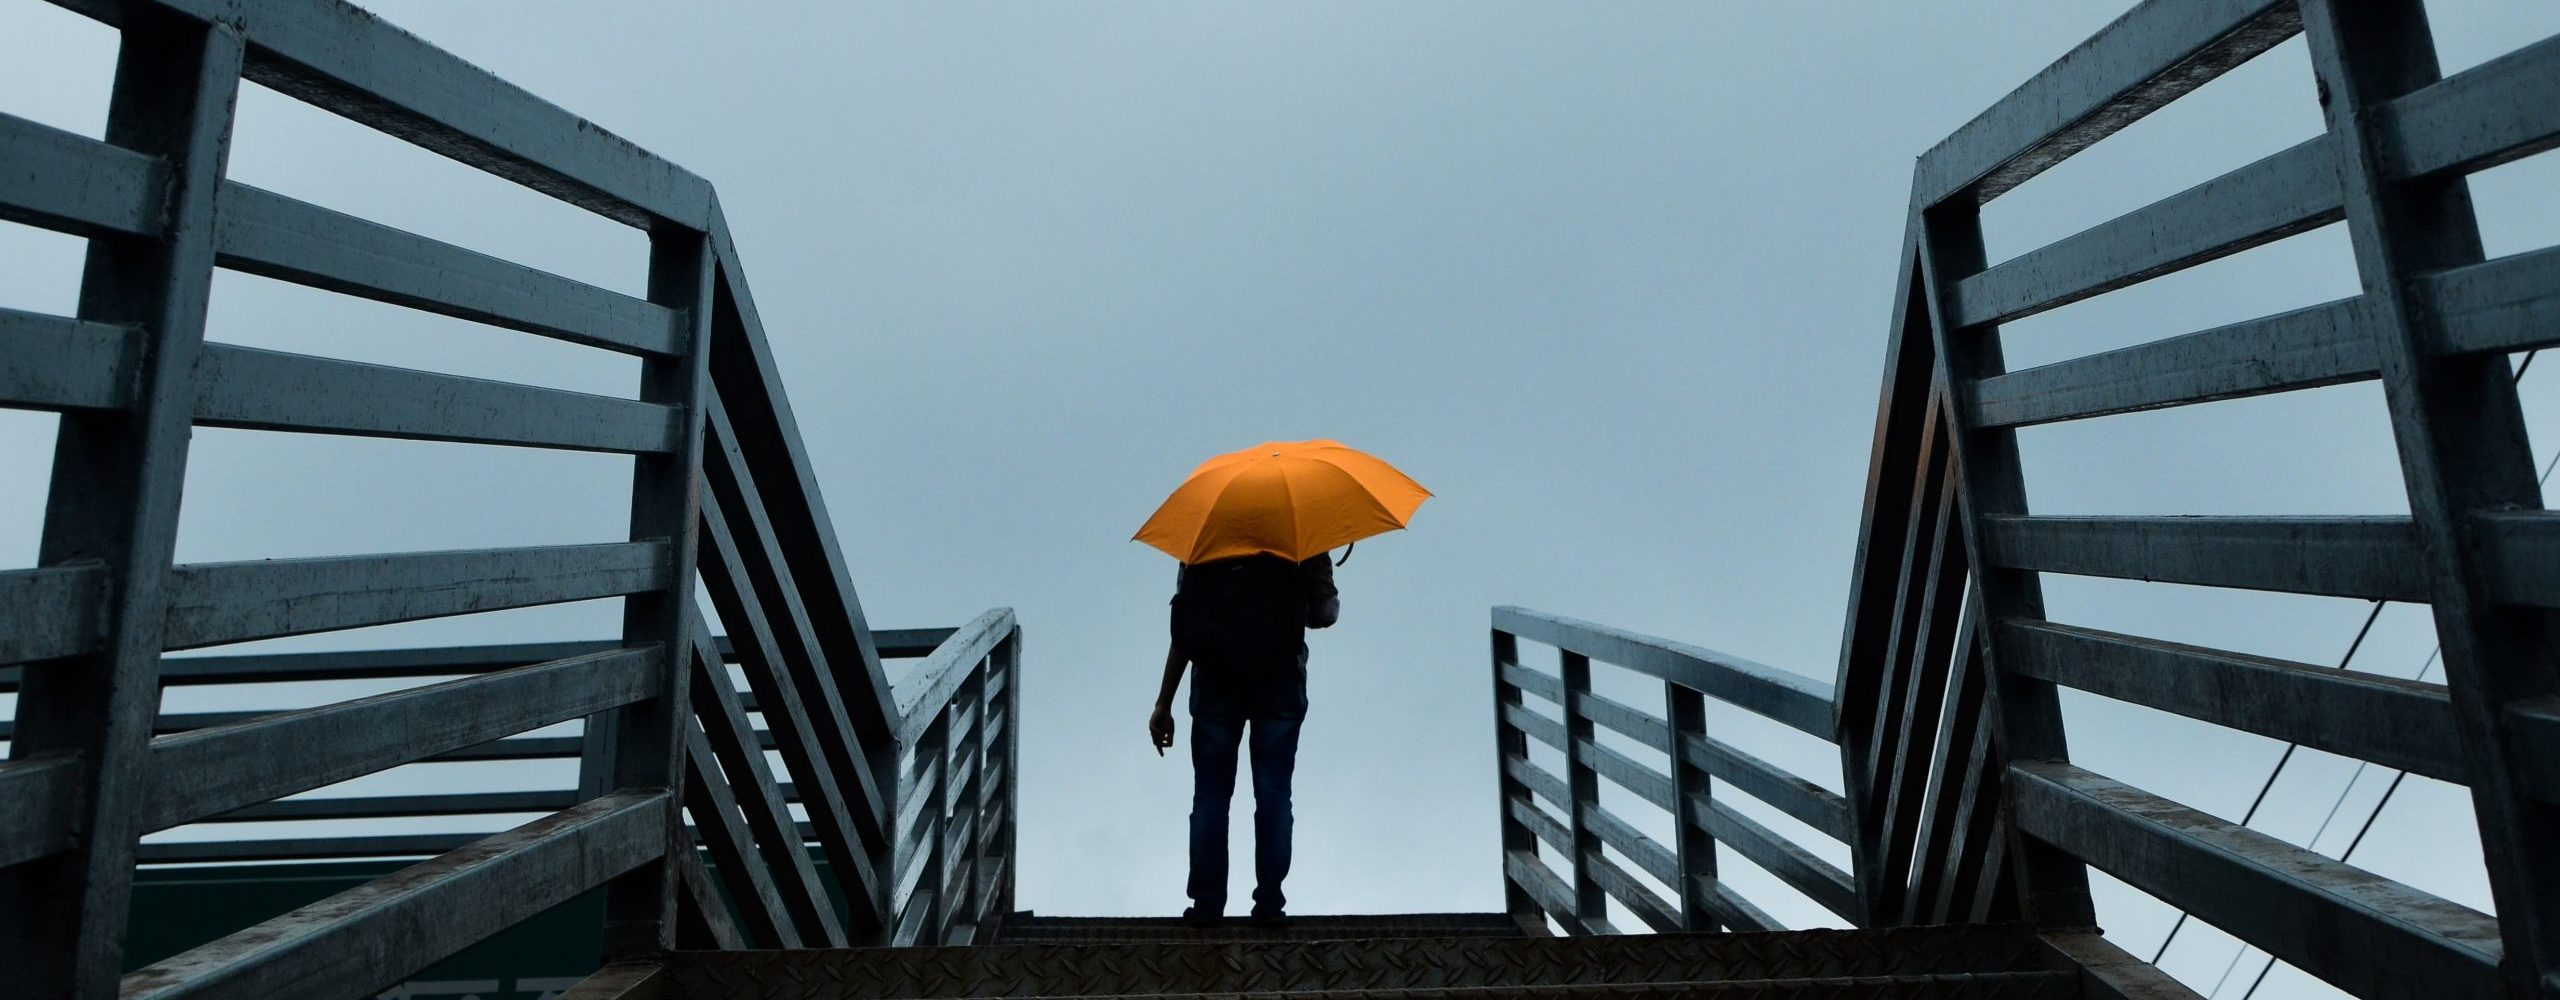 person-holding-umbrella-standing-above-stairs-1695056